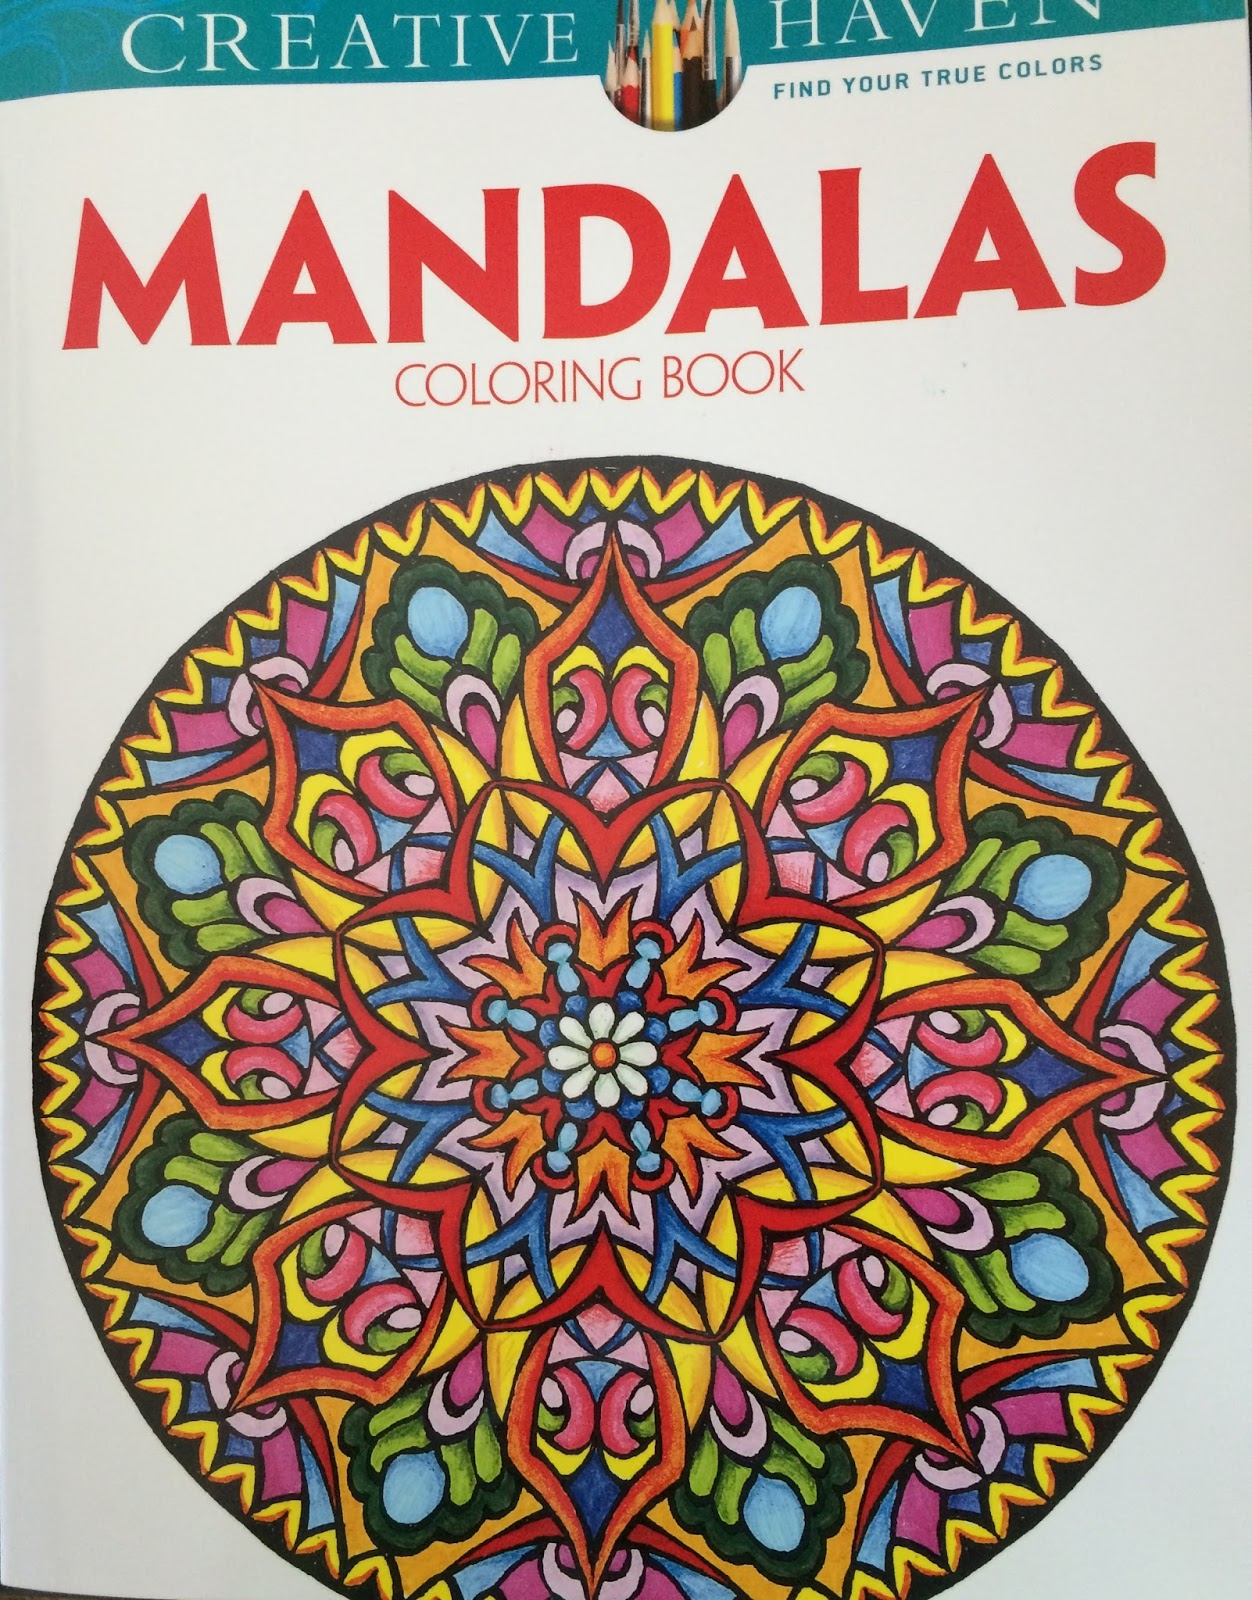 The Best Adult Coloring Books The Jersey Momma